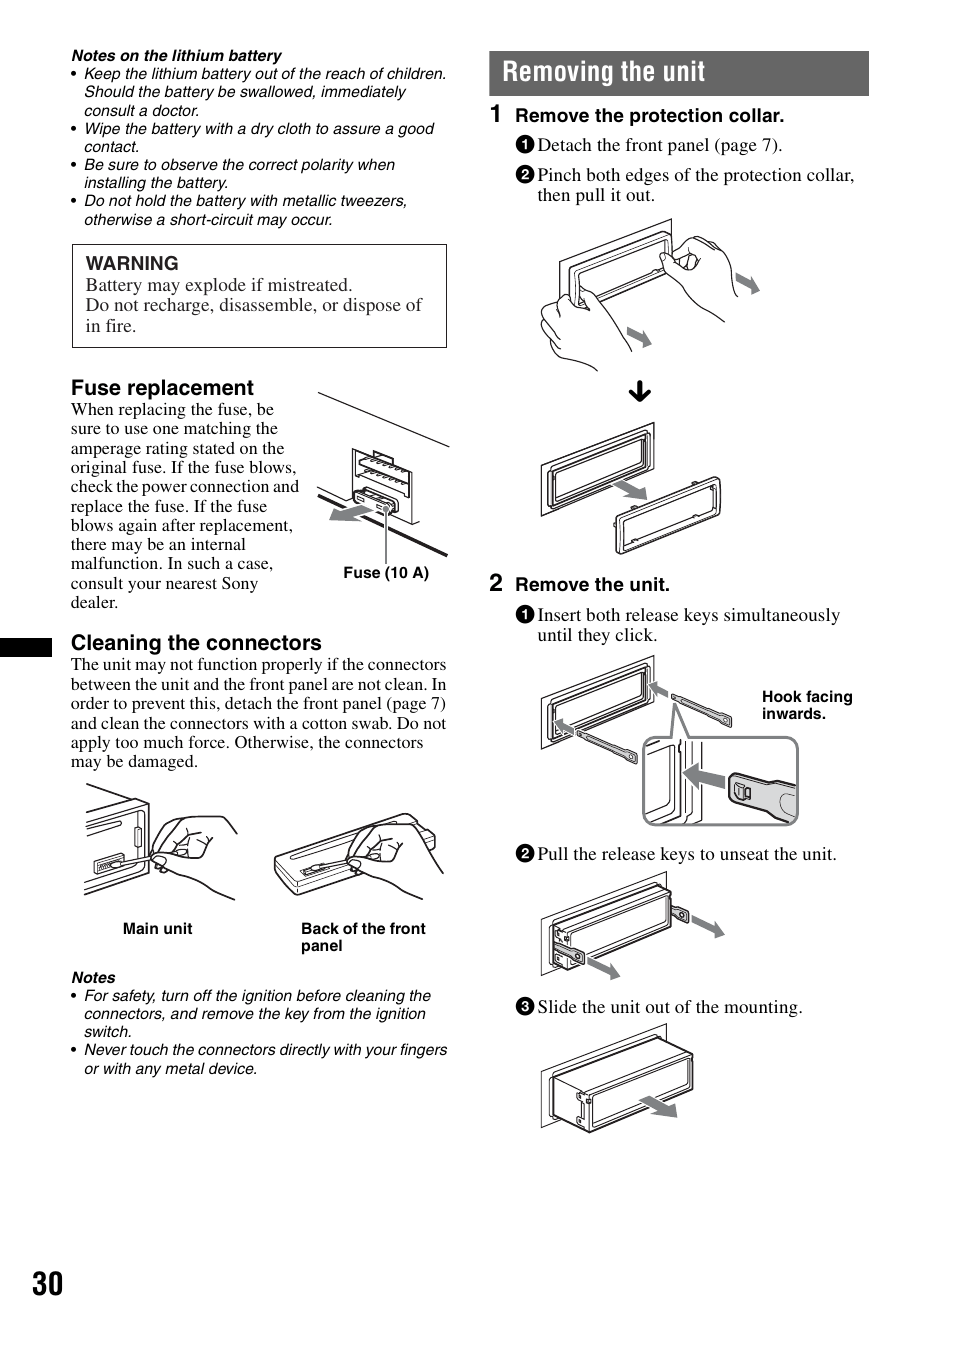 medium resolution of removing the unit sony mex bt38uw user manual page 30 72